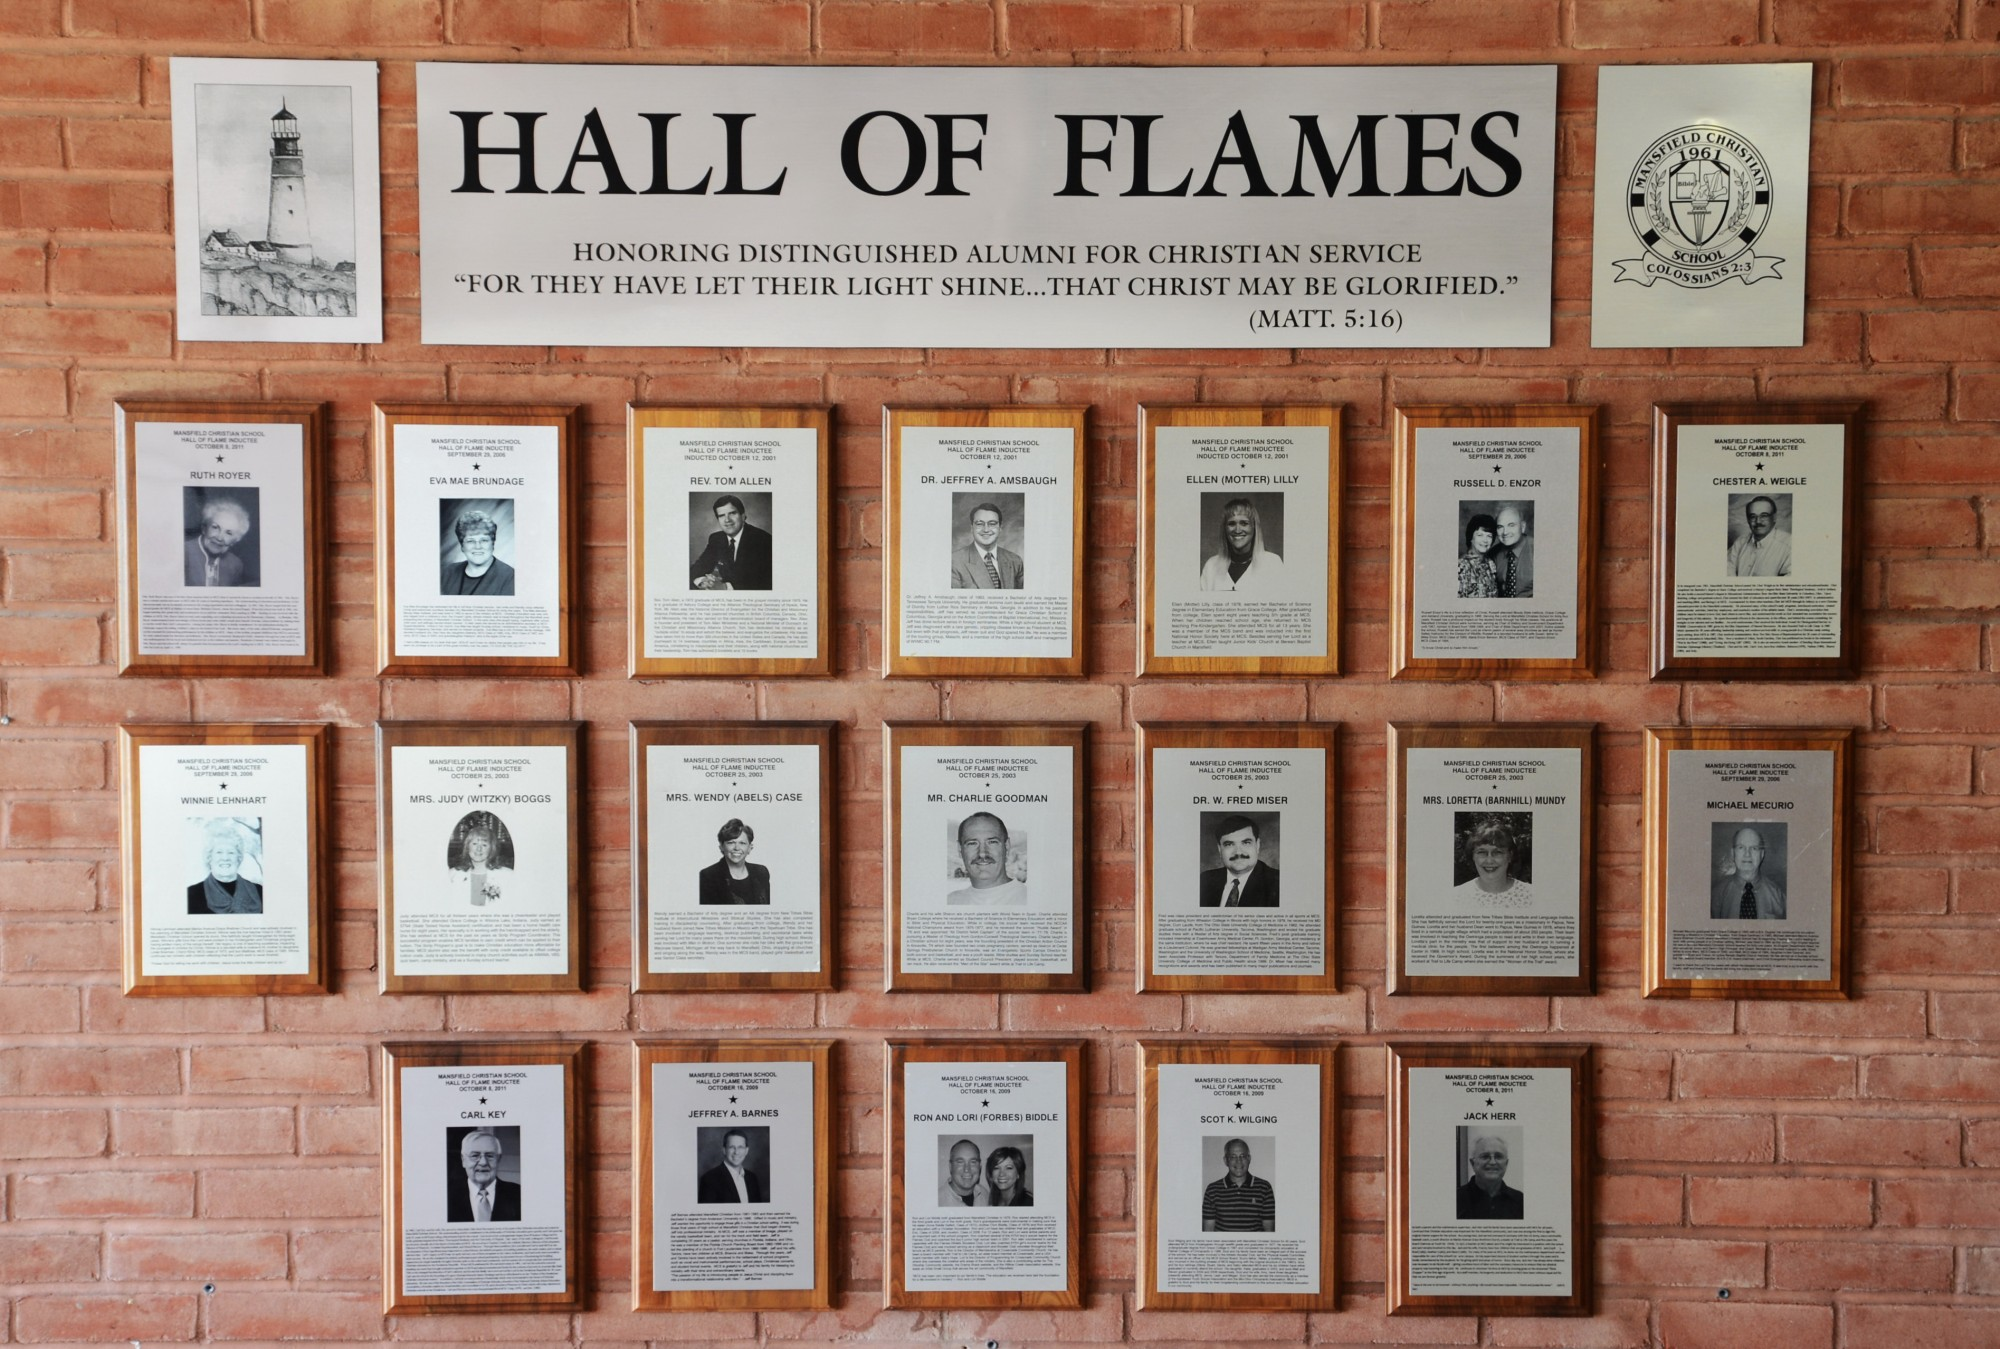 Hall of Flames